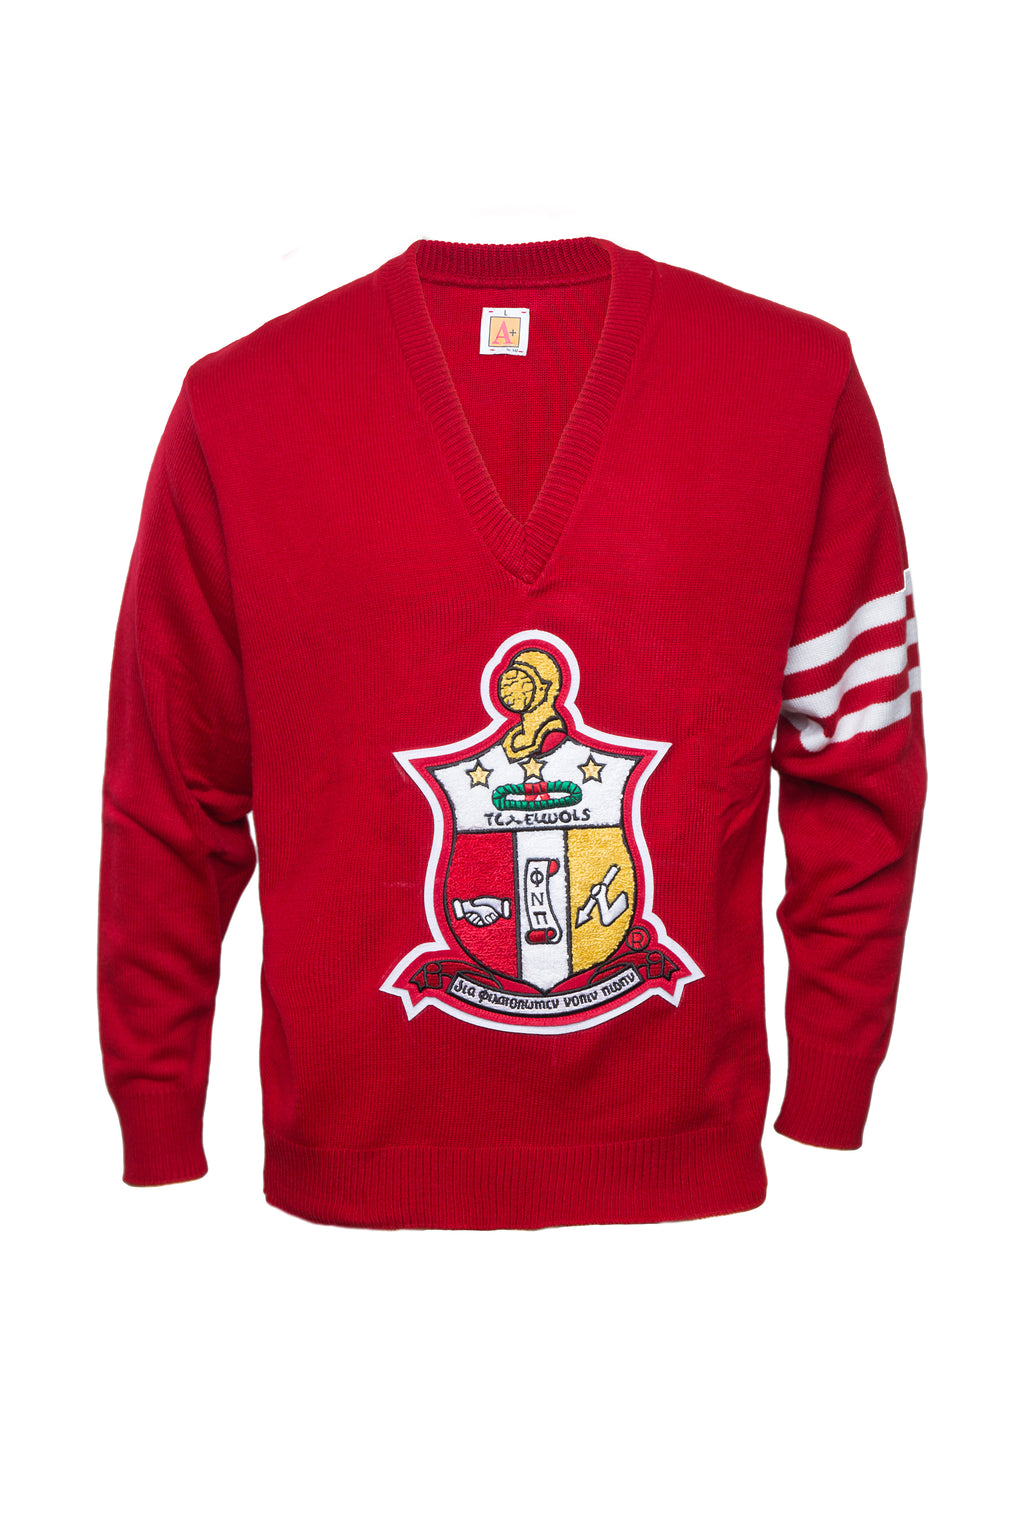 Old School Kappa Vneck Sweater with Chenille Crest